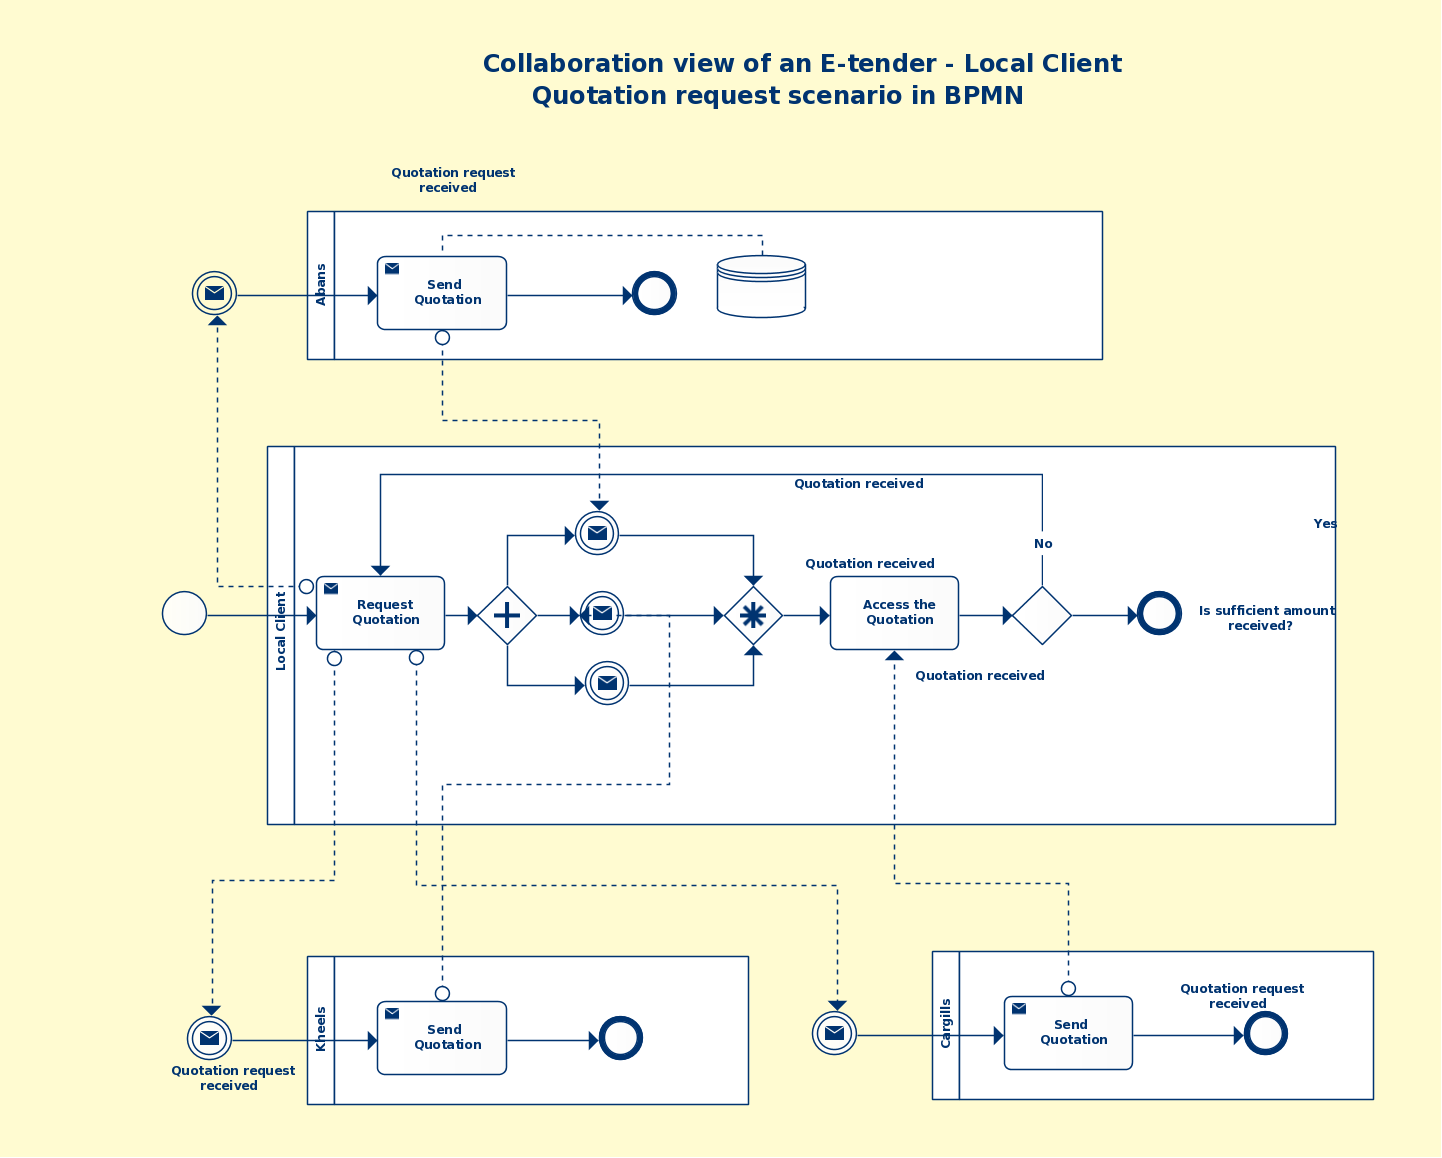 bpmn templates examples to quickly model business processes rh creately com BPMN Timer BPMN Notation Chart